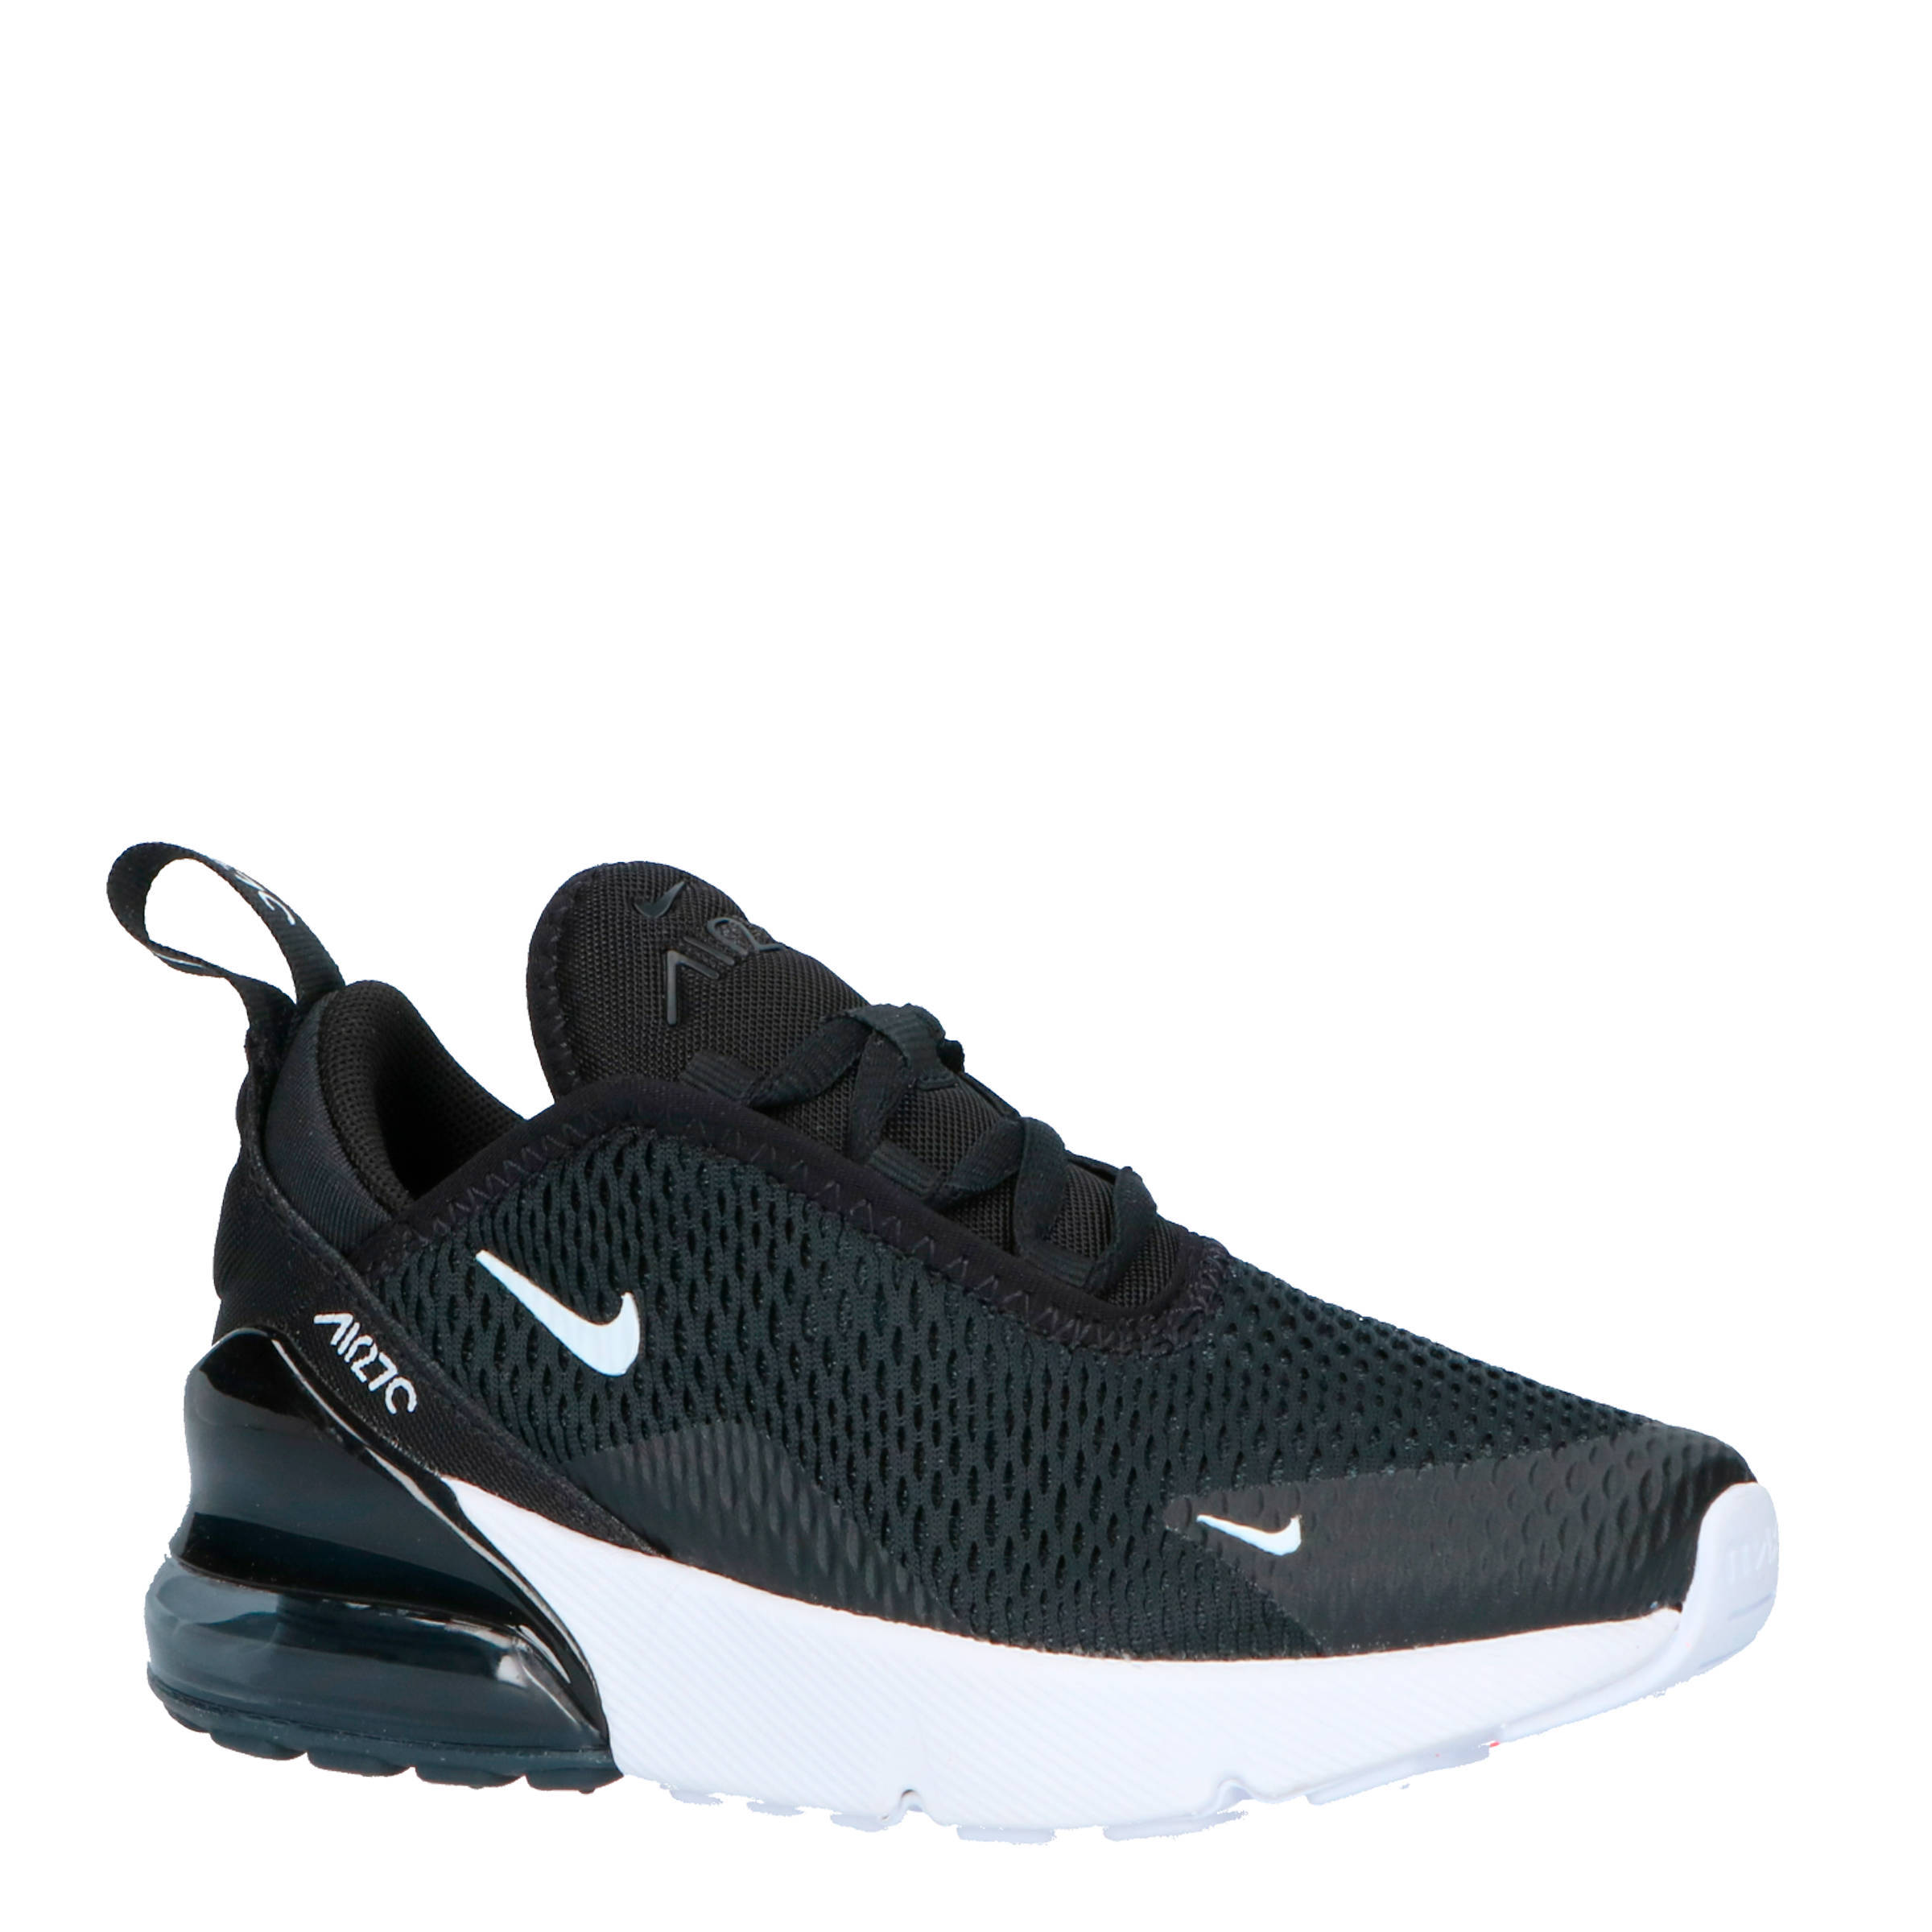 huge selection of 90925 37bbe nike-air-max-270-ps-sneakers-zwart-0887230476283.jpg